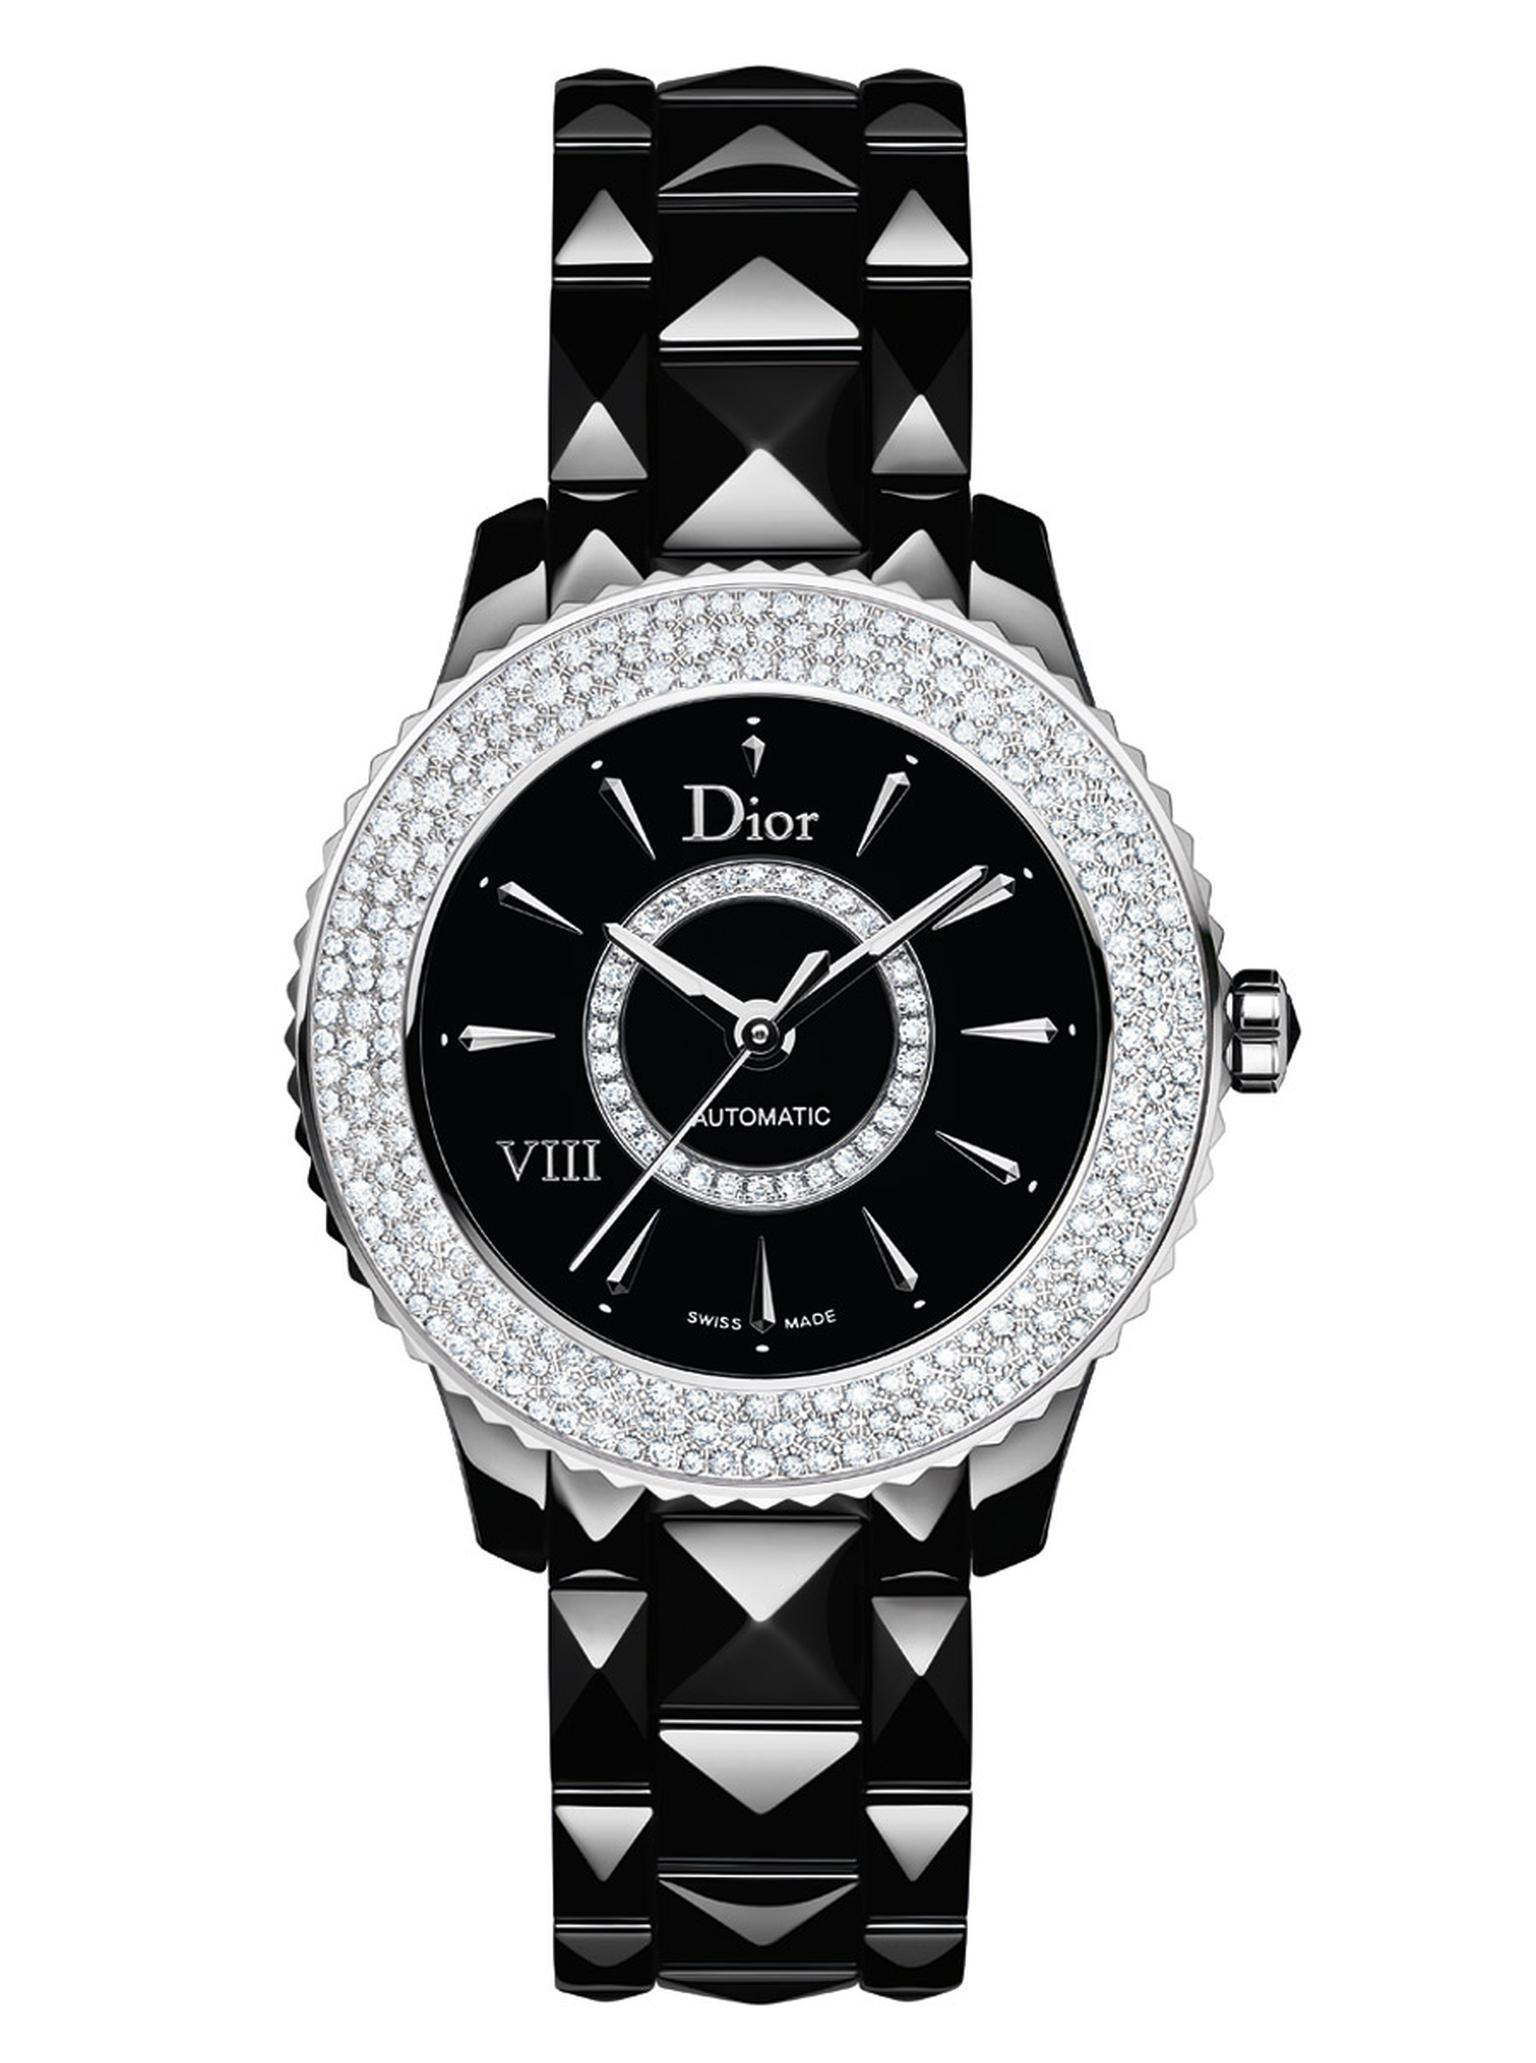 DIOR-VIII-BLACK-AUTO-DIAMOND-SNOW-SET-BEZEL-33mm.jpg